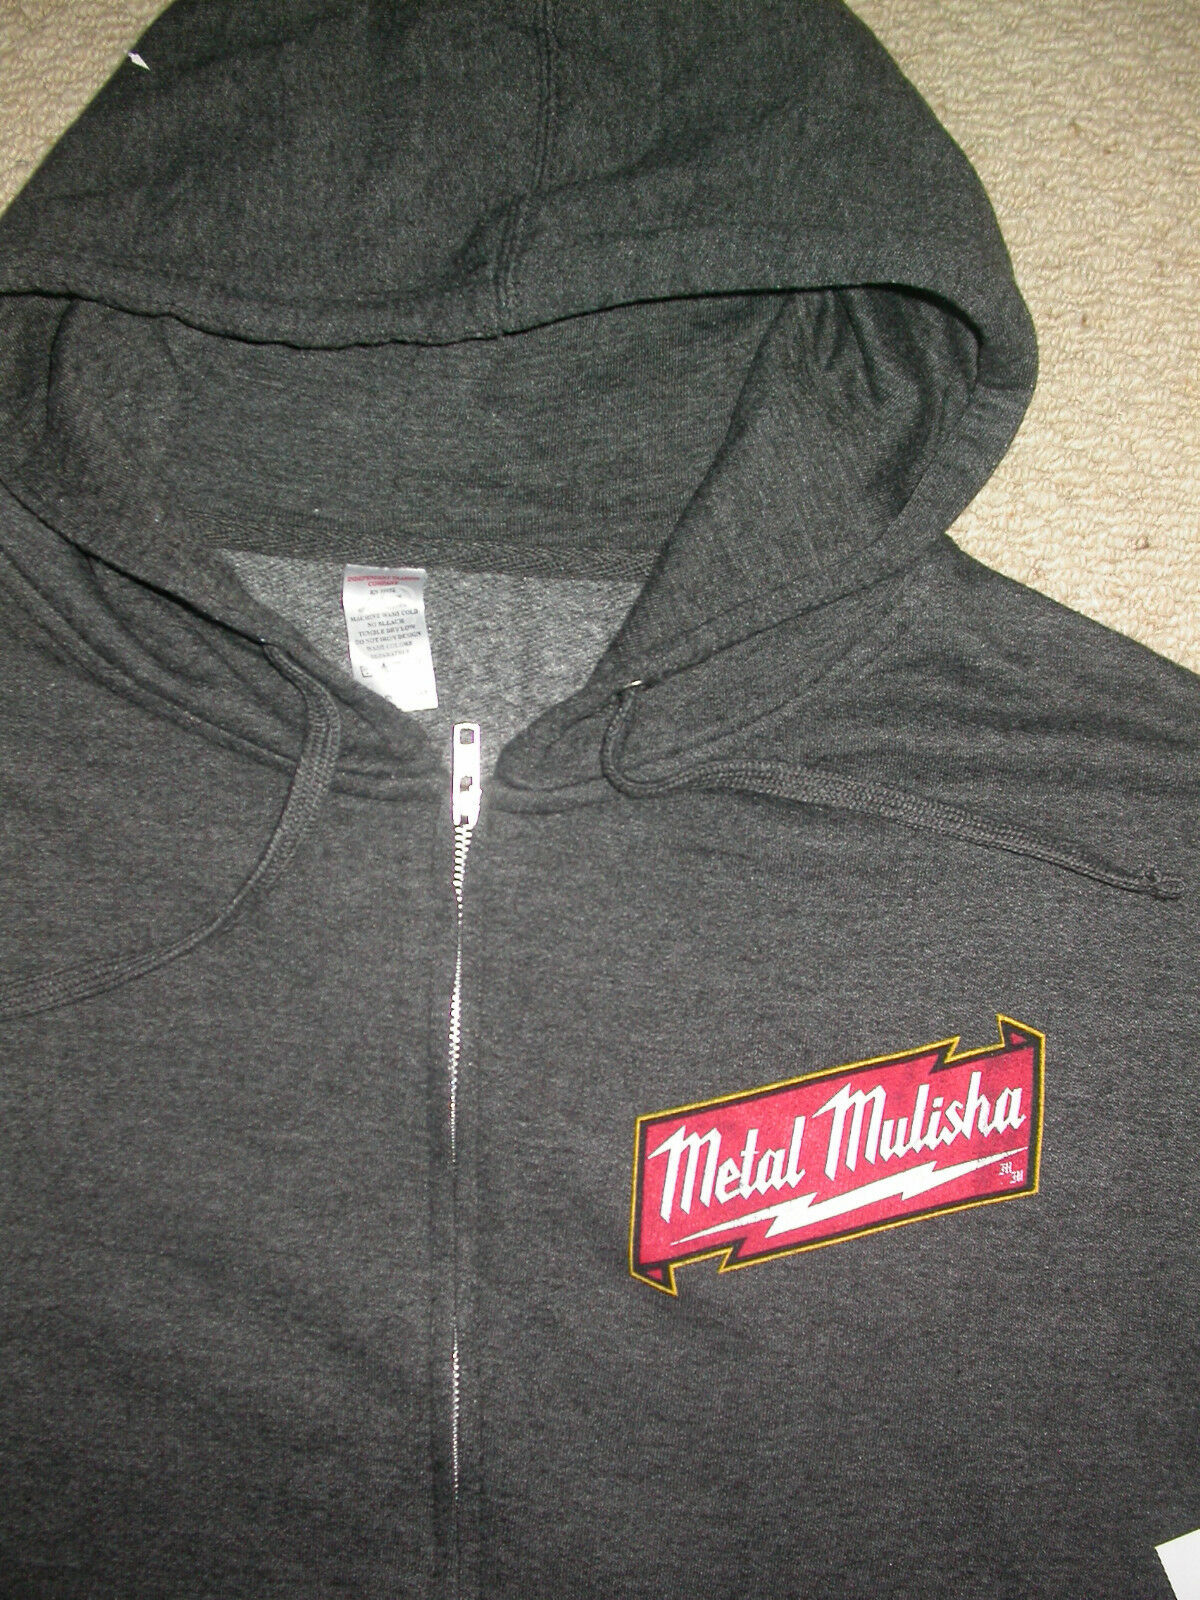 METAL MULISHA ZIP UP  HOODED SWEATSHIRT LARGE L . DIAZ UFC MMA BJJ BOXING KSW NEW  all in high quality and low price